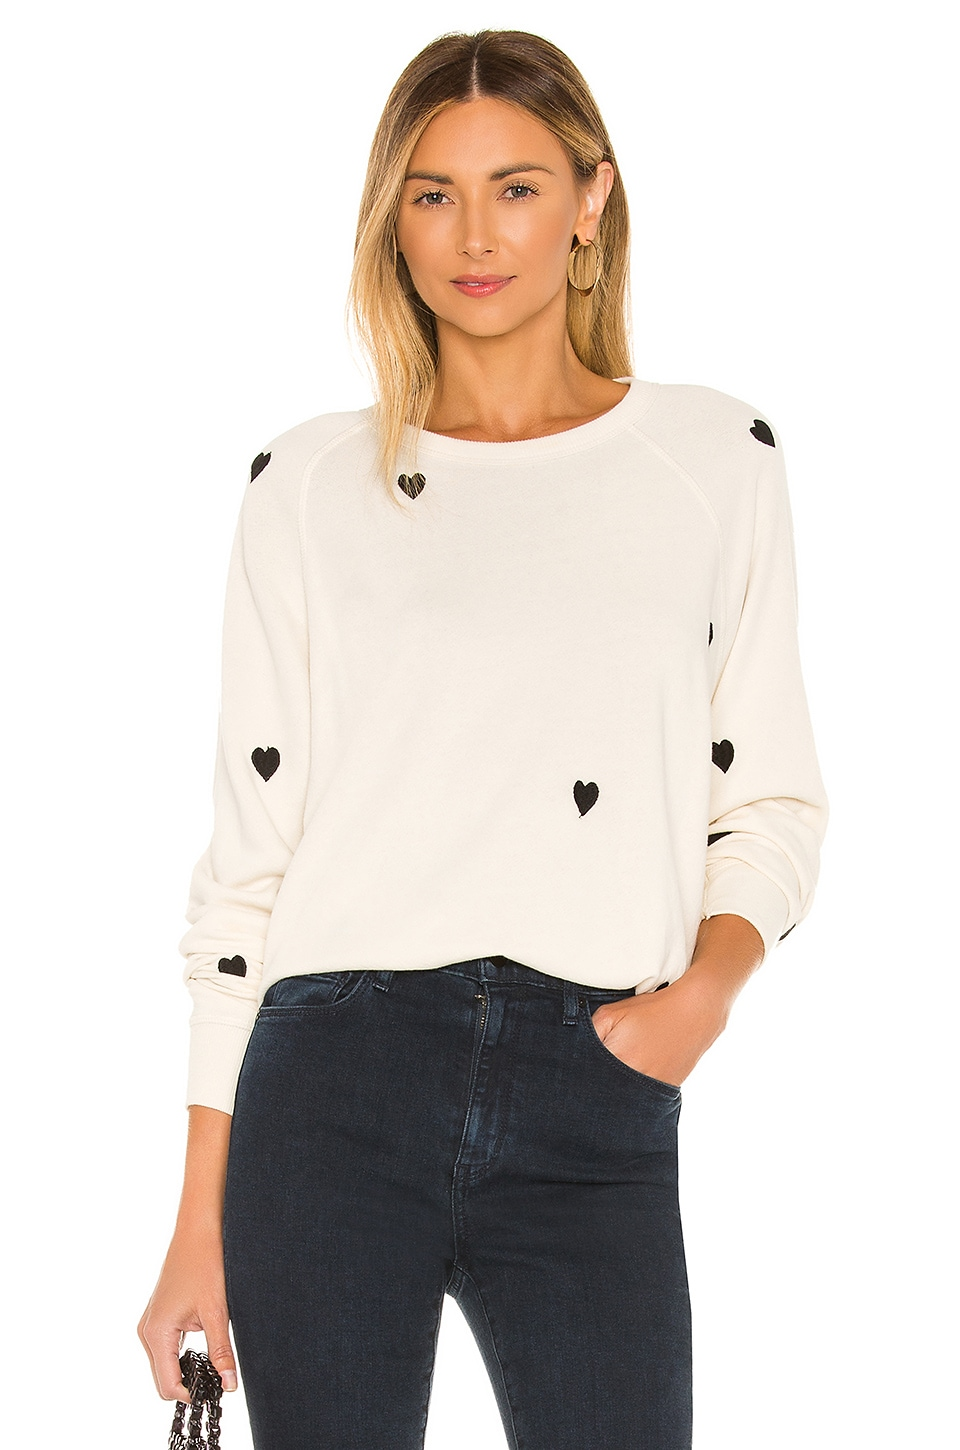 The Great The College Sweatshirt in Washed White